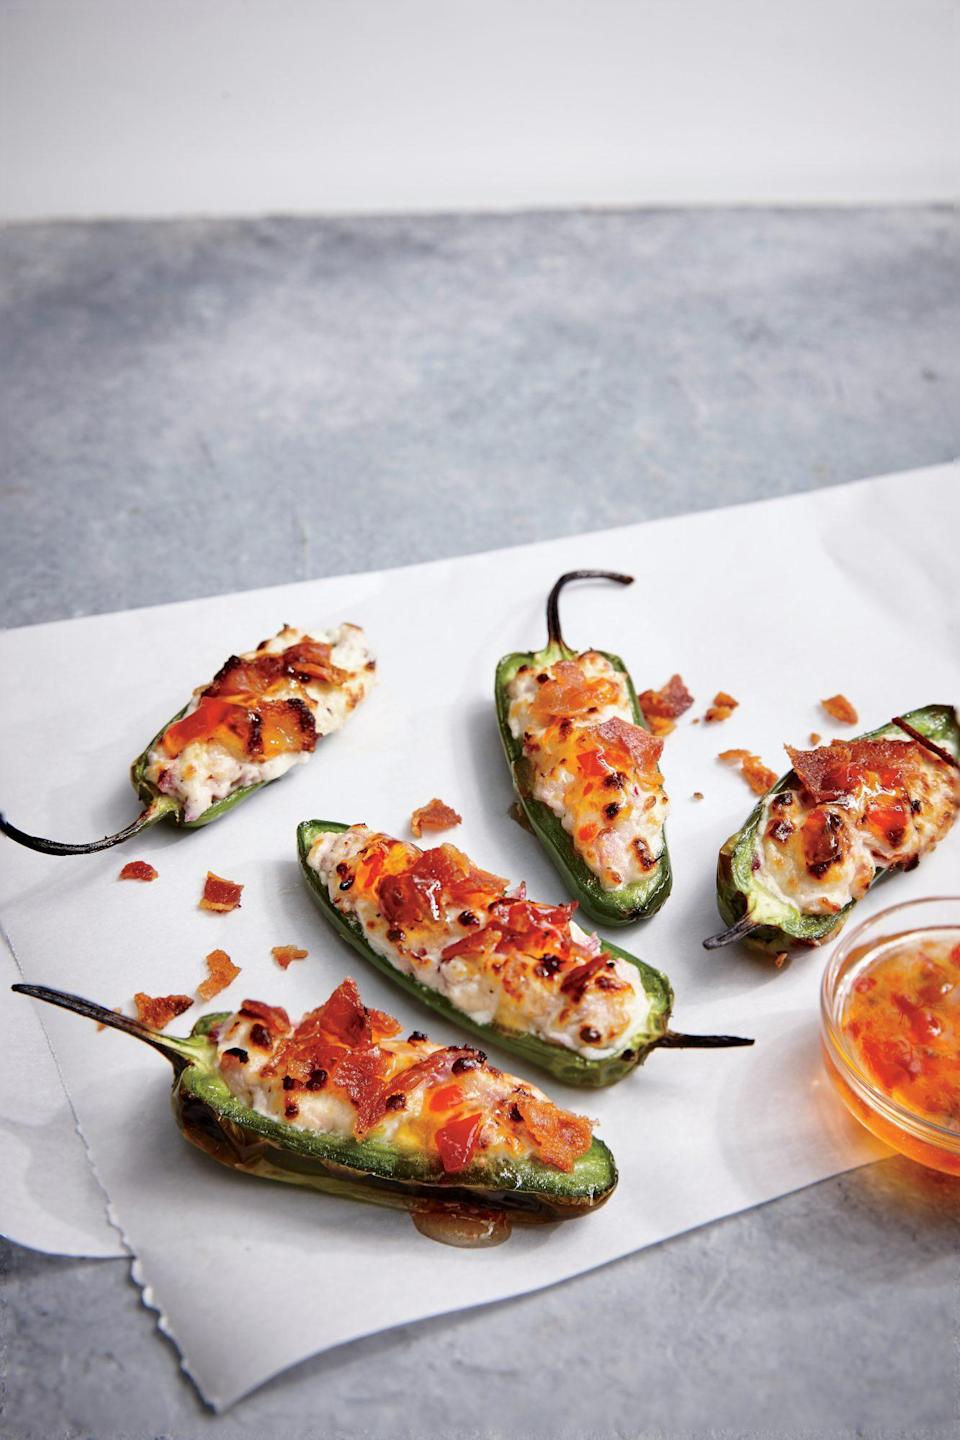 """<p>Salty bacon, <a href=""""https://www.myrecipes.com/ingredients/ways-to-use-goat-cheese"""" rel=""""nofollow noopener"""" target=""""_blank"""" data-ylk=""""slk:rich goat cheese"""" class=""""link rapid-noclick-resp"""">rich goat cheese</a>, savory-sweet jelly, and roasted jalapeño--it takes teamwork to make the dream work. If you already have the grill going, these dreamy little bites are equally easy to cook outdoors.</p>"""